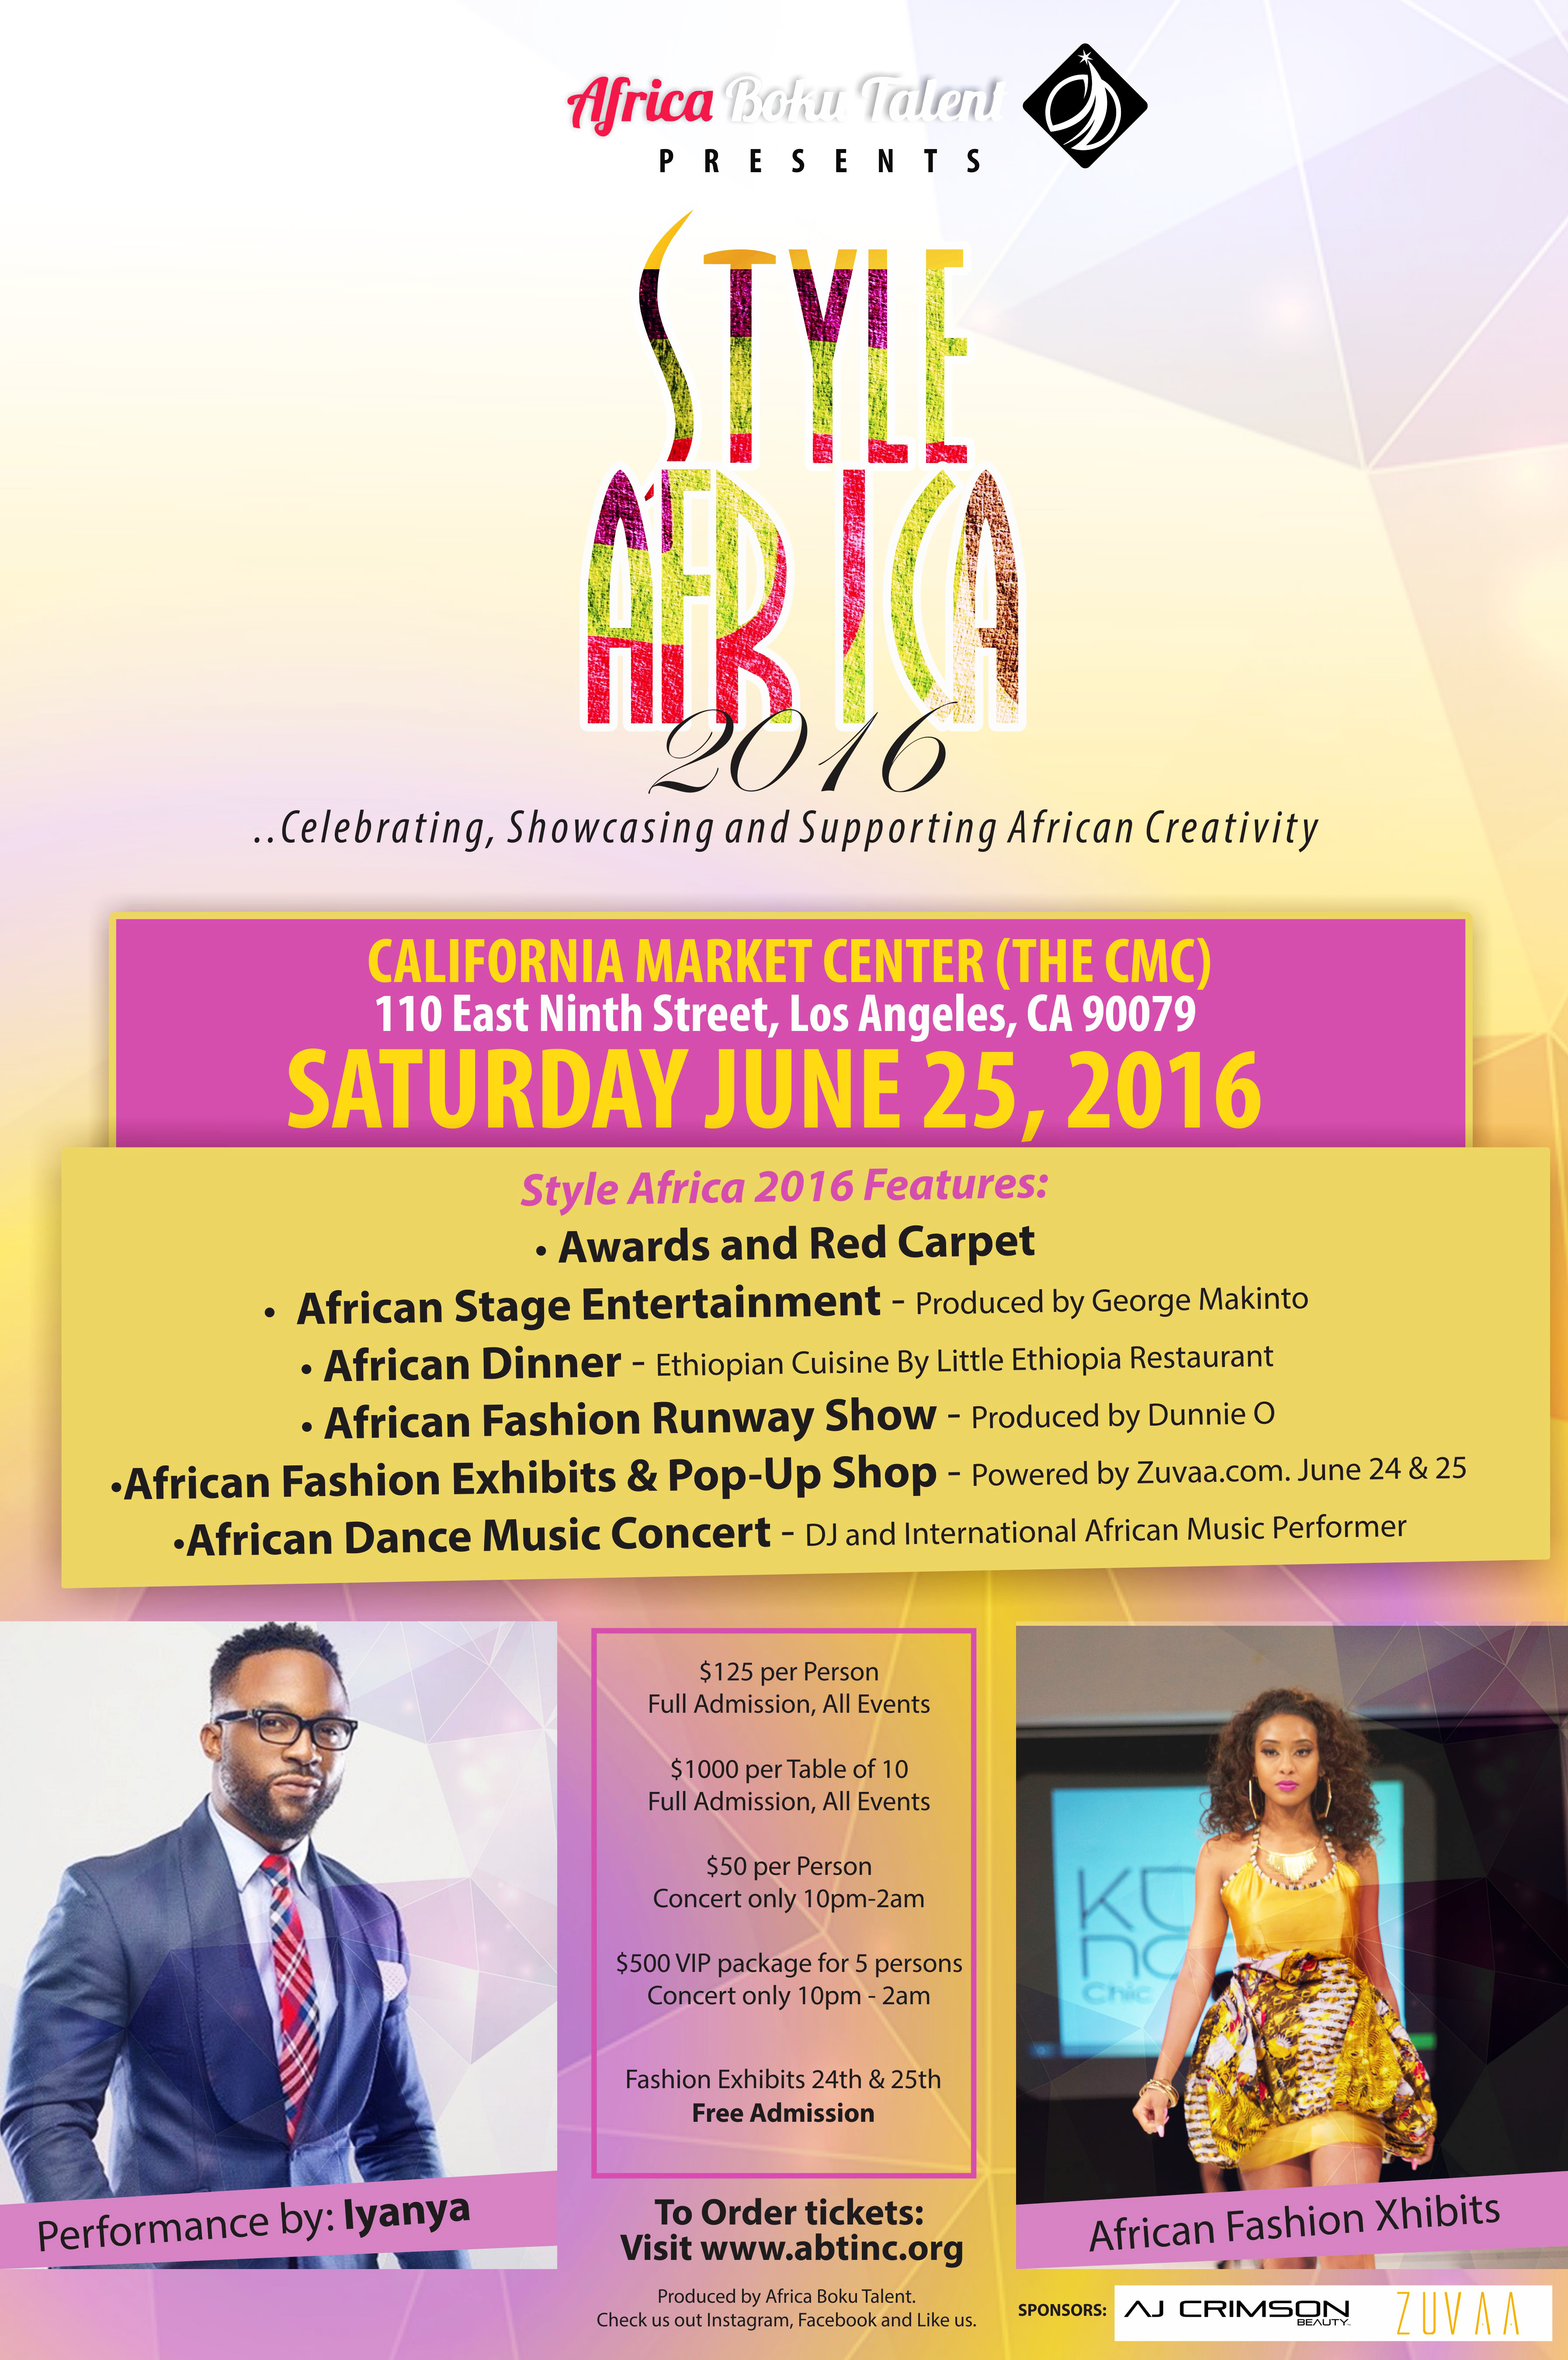 Style Africa 2016 Showcasing and Supporting African Creativity